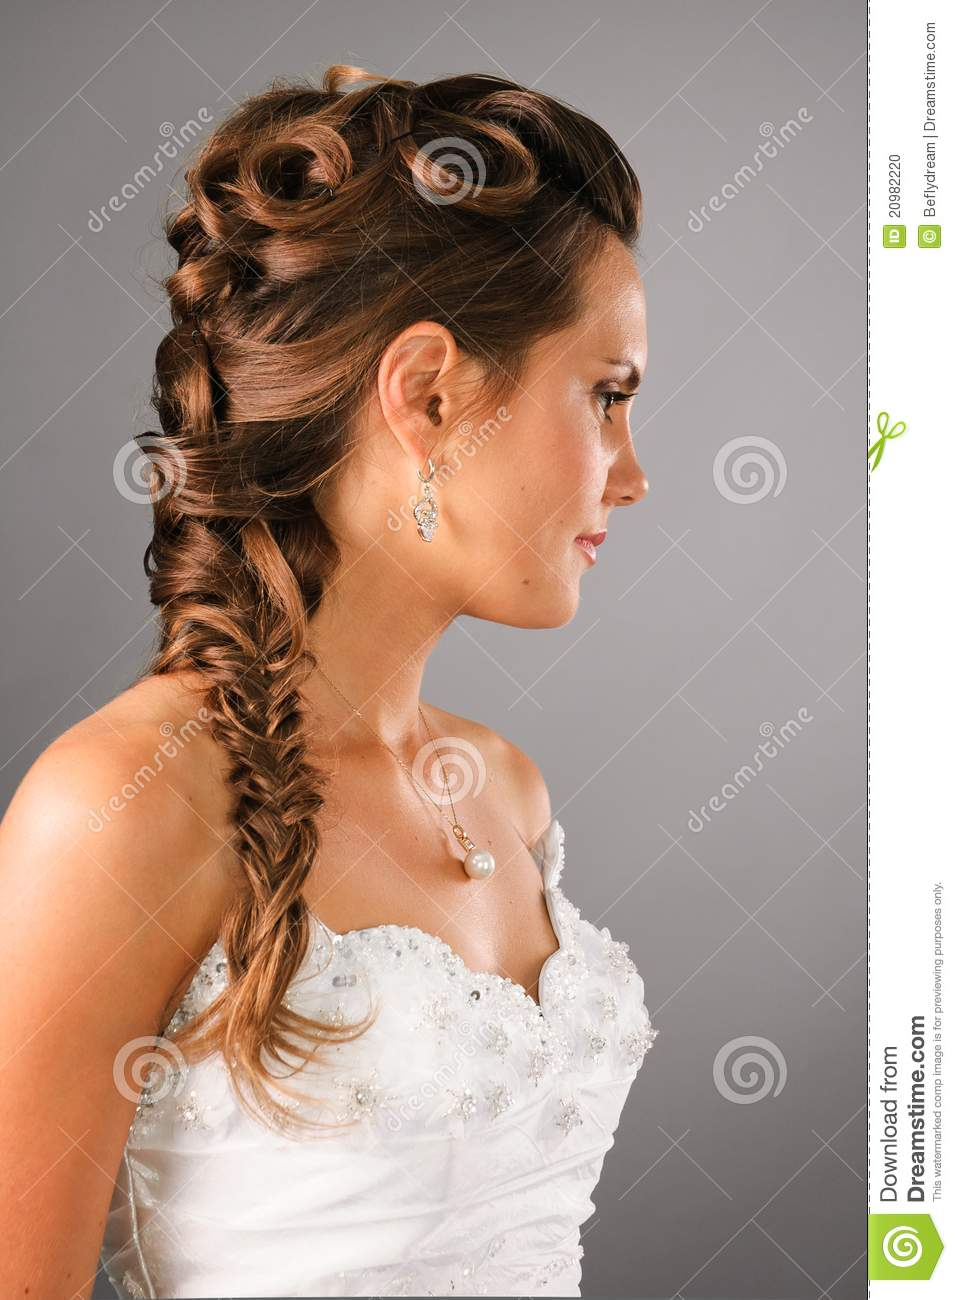 Bridal Hairdo With A Plate In Studio Stock Photo Image Of Bridal